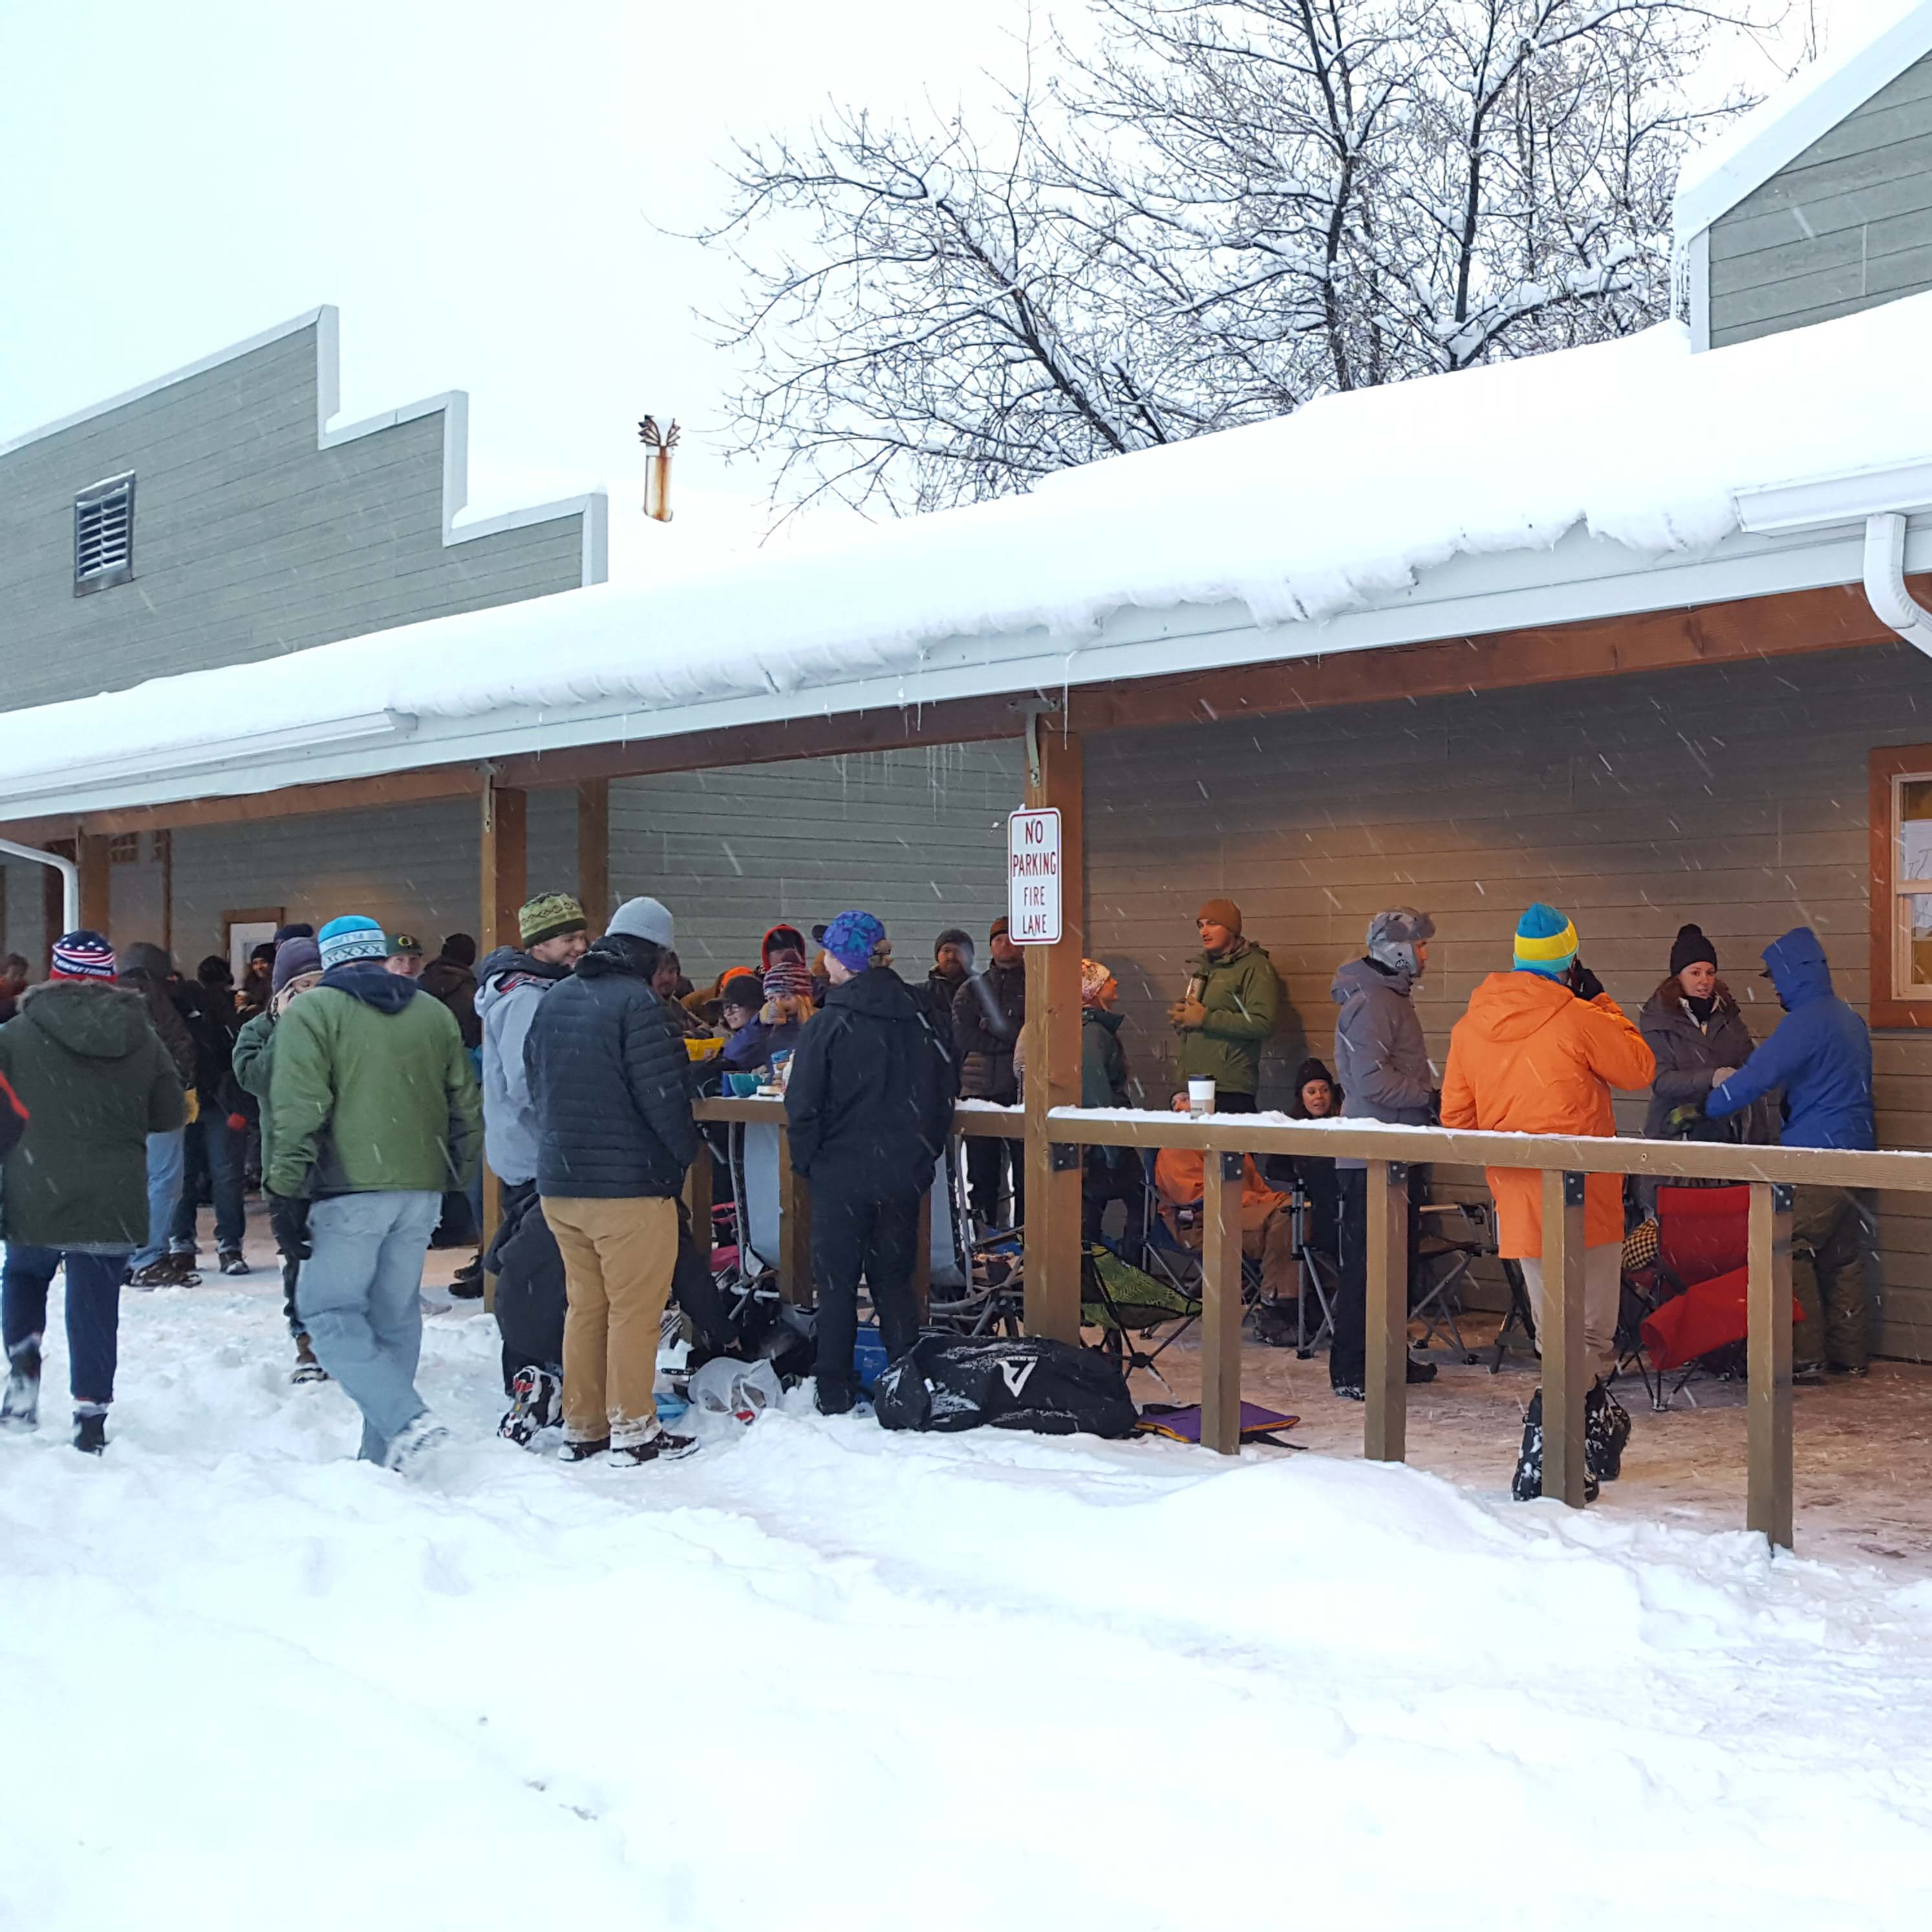 A line of people waiting outside of a building for ski swap.